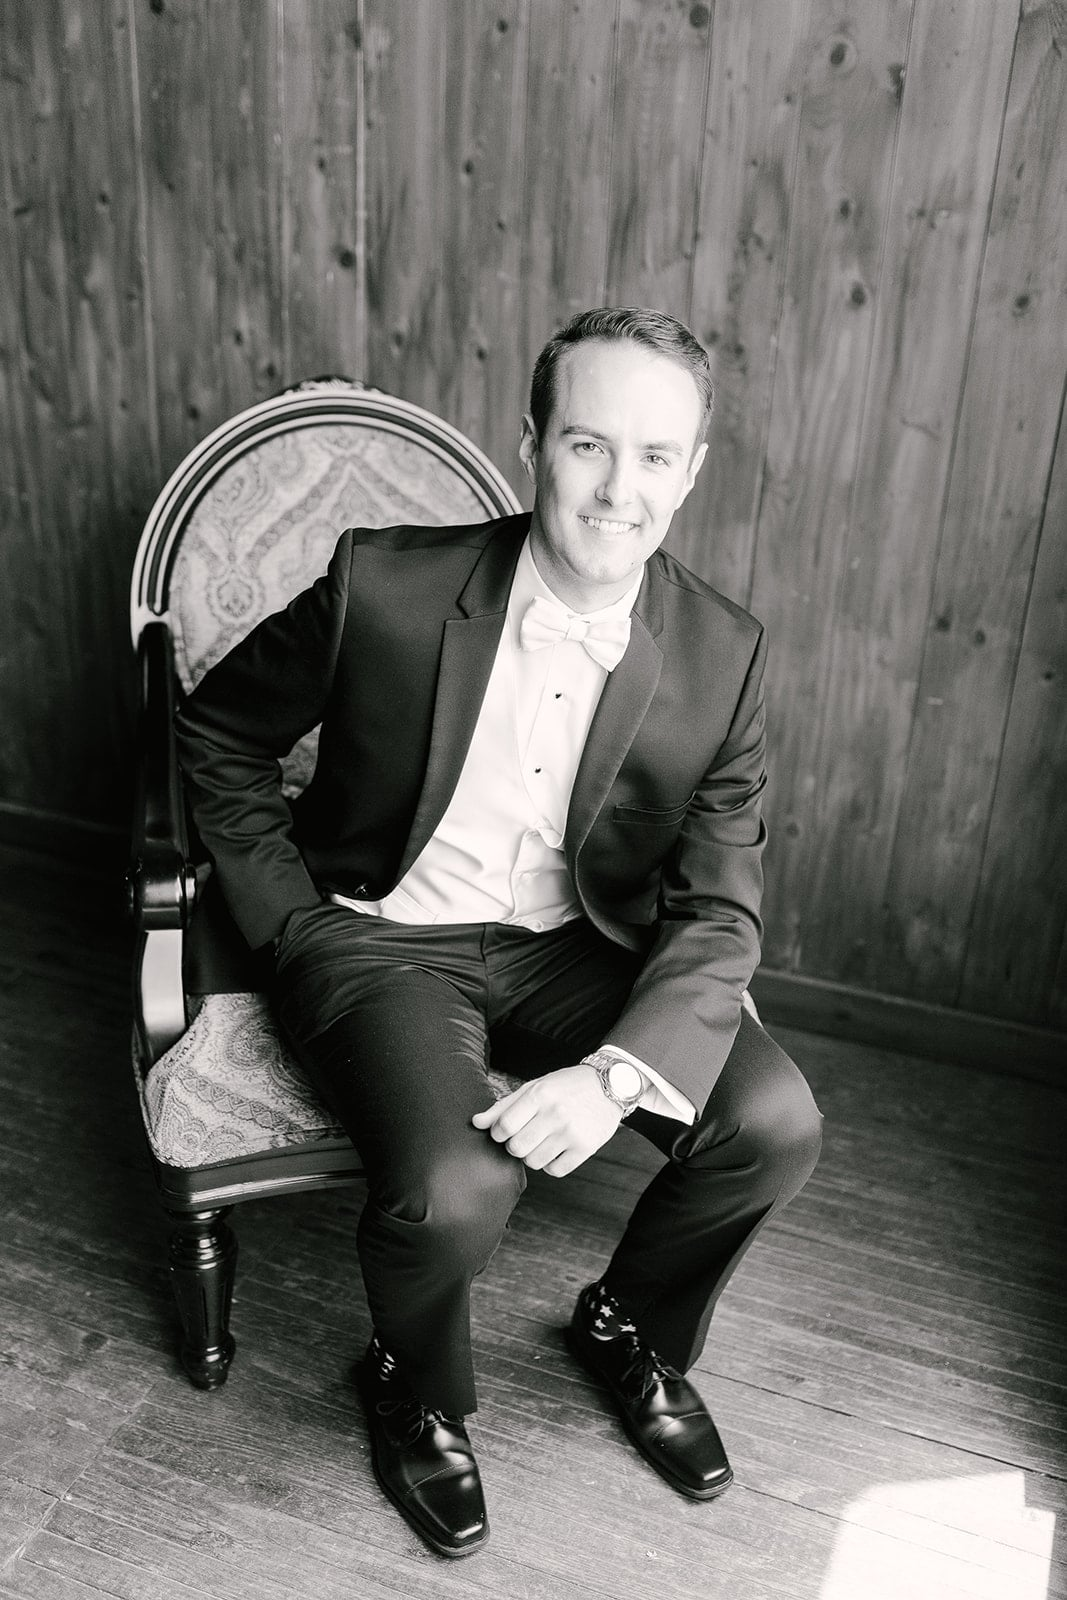 Groom poses before his spring wedding at The Diary Barn which was coordinated by Magnificent Moments Weddings